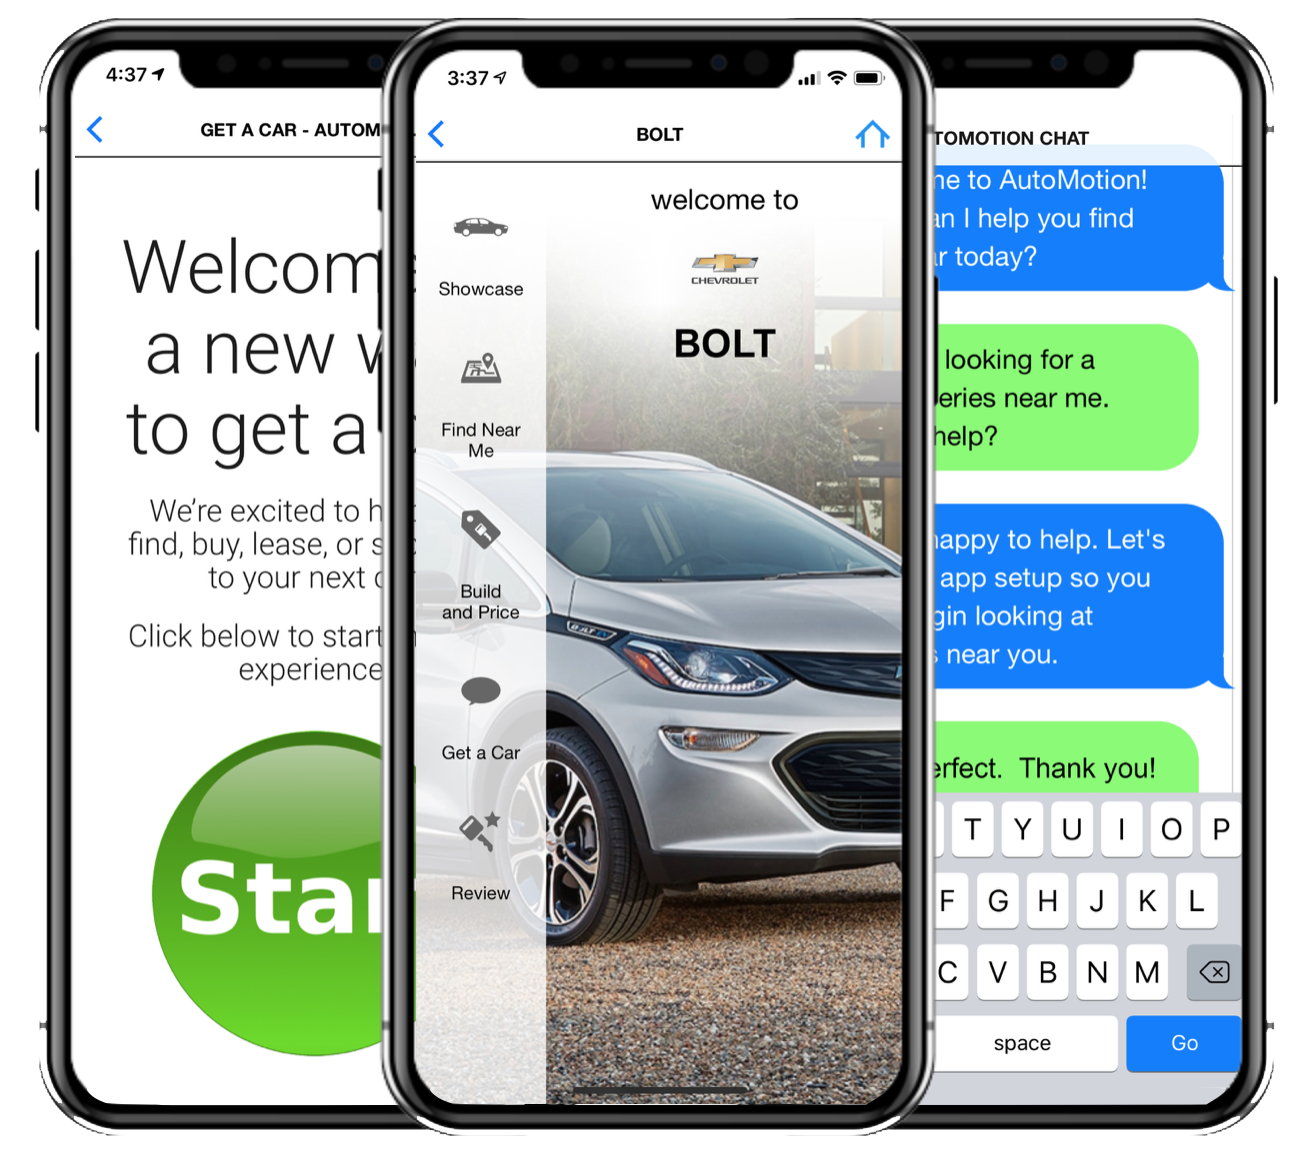 Get a Car App - Coming soon to the Apple App Store